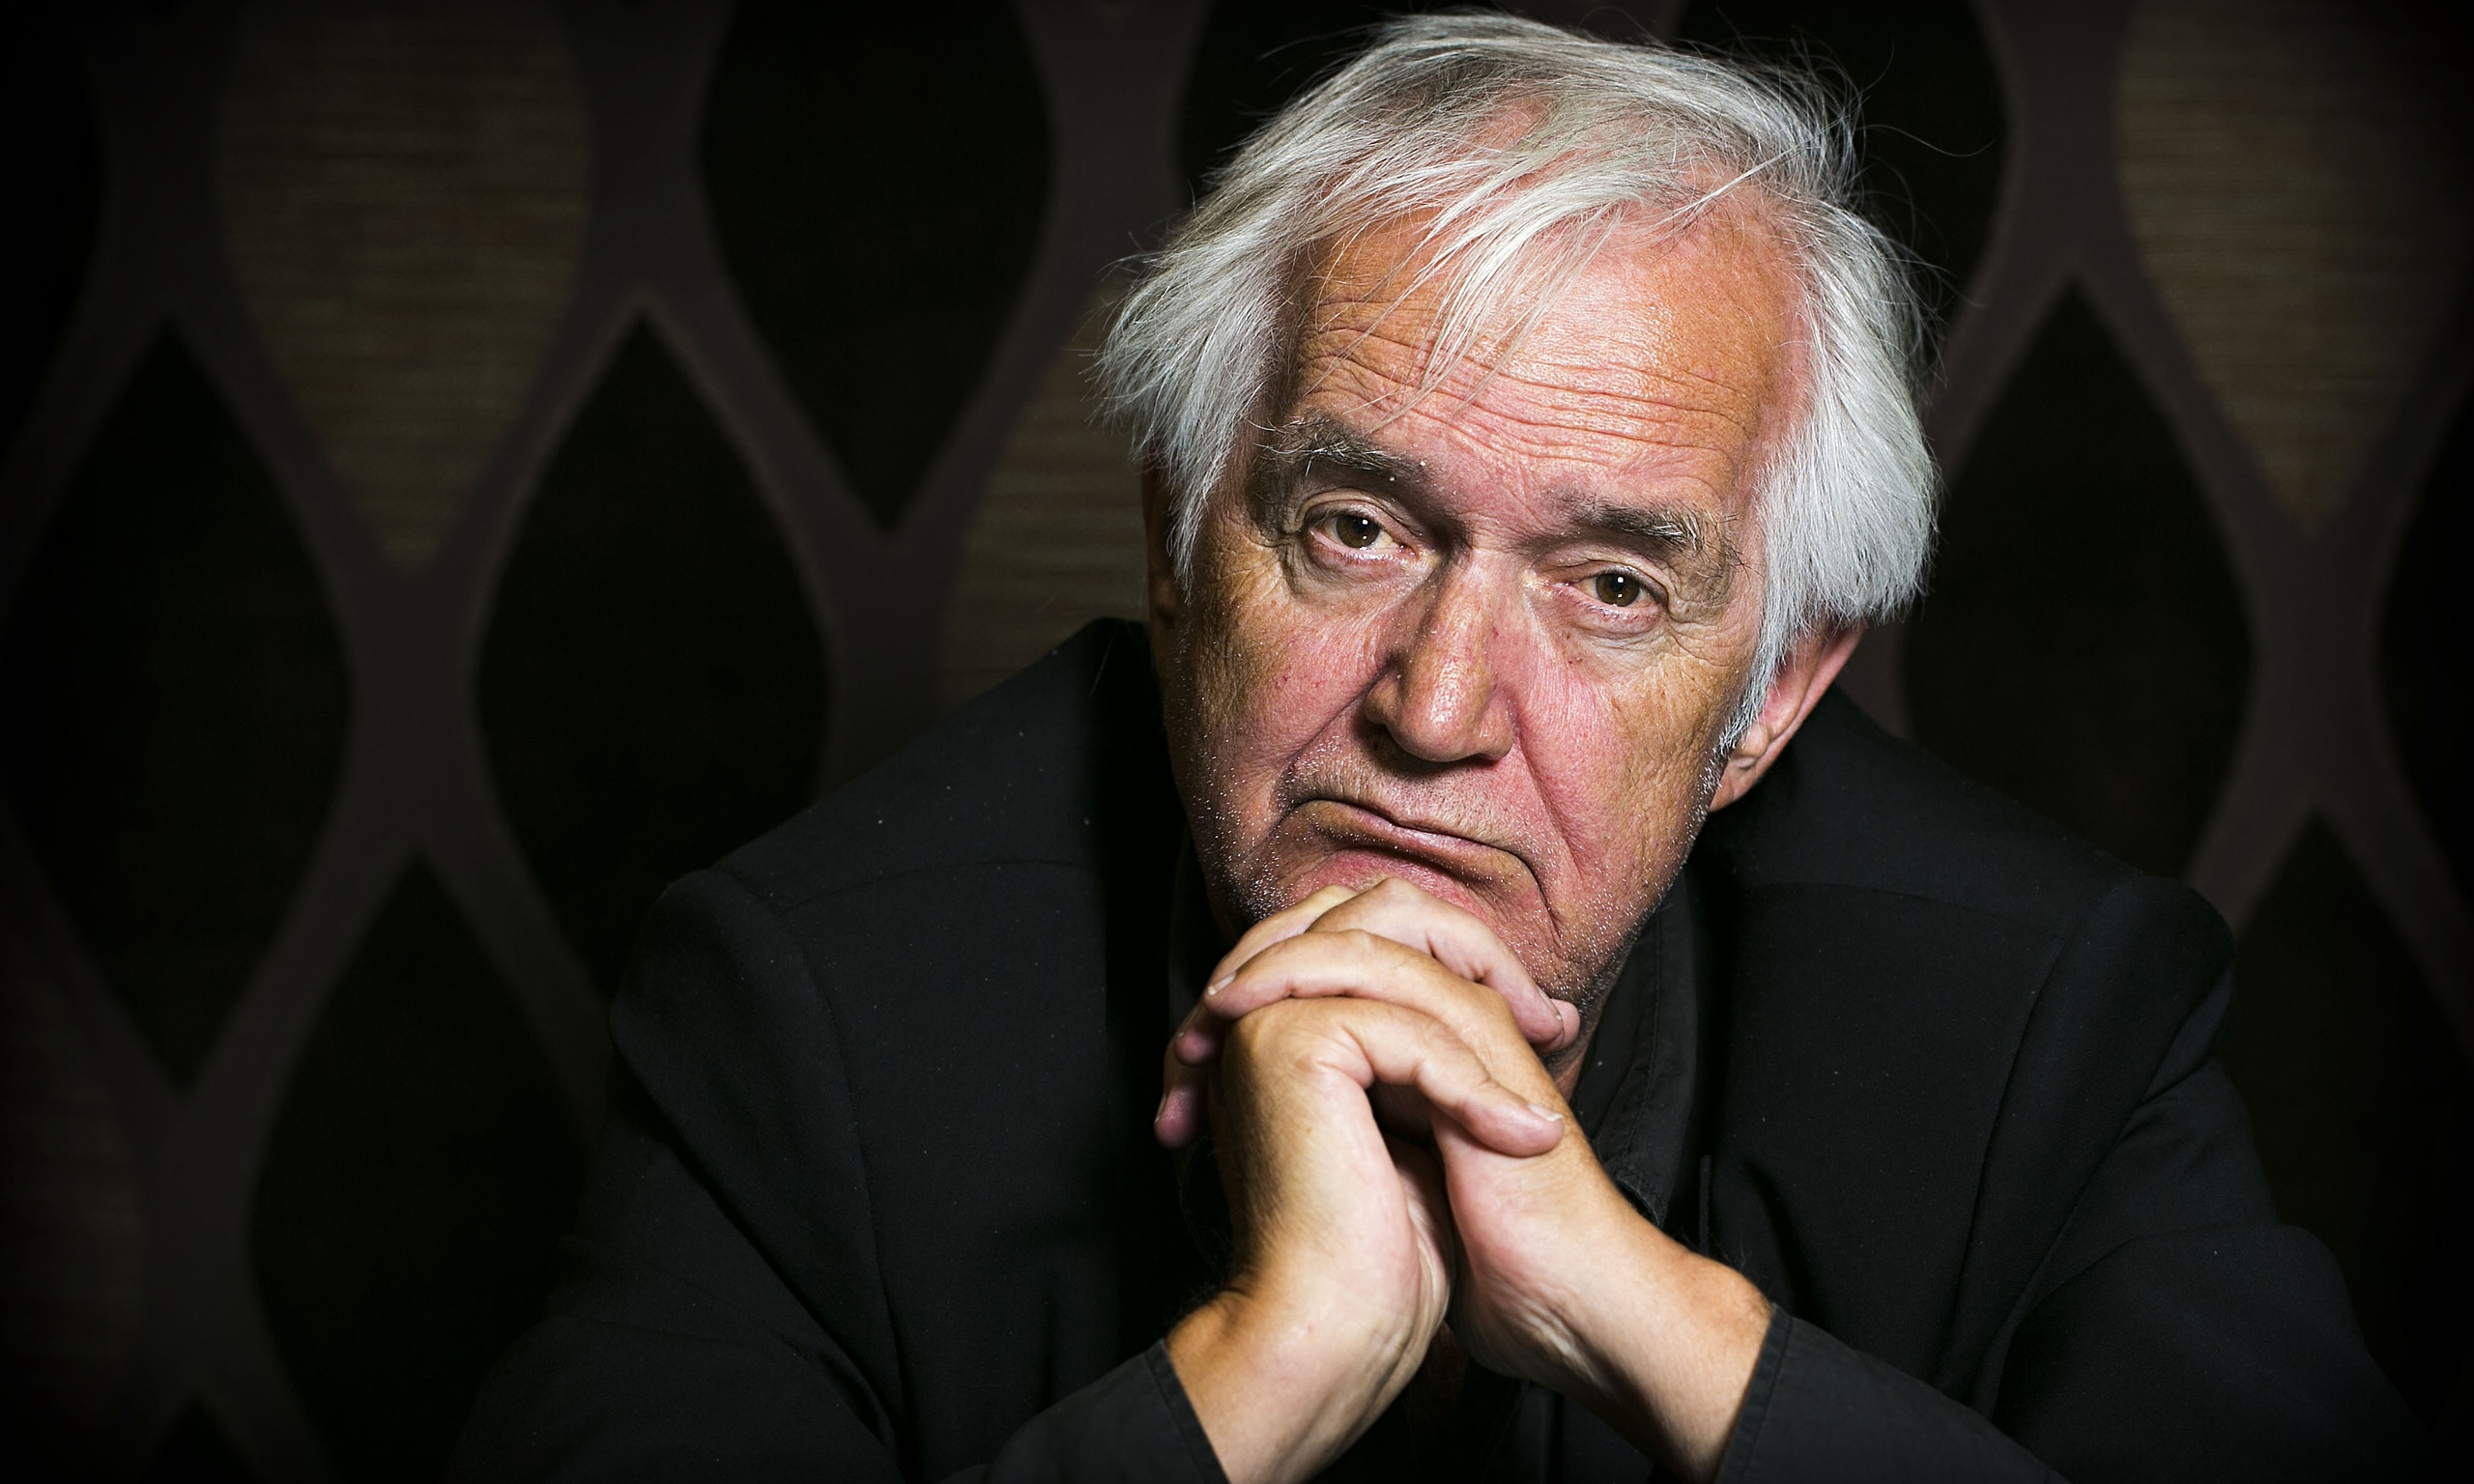 Henning Mankell: how it feels to be diagnosed with cancer | Life and